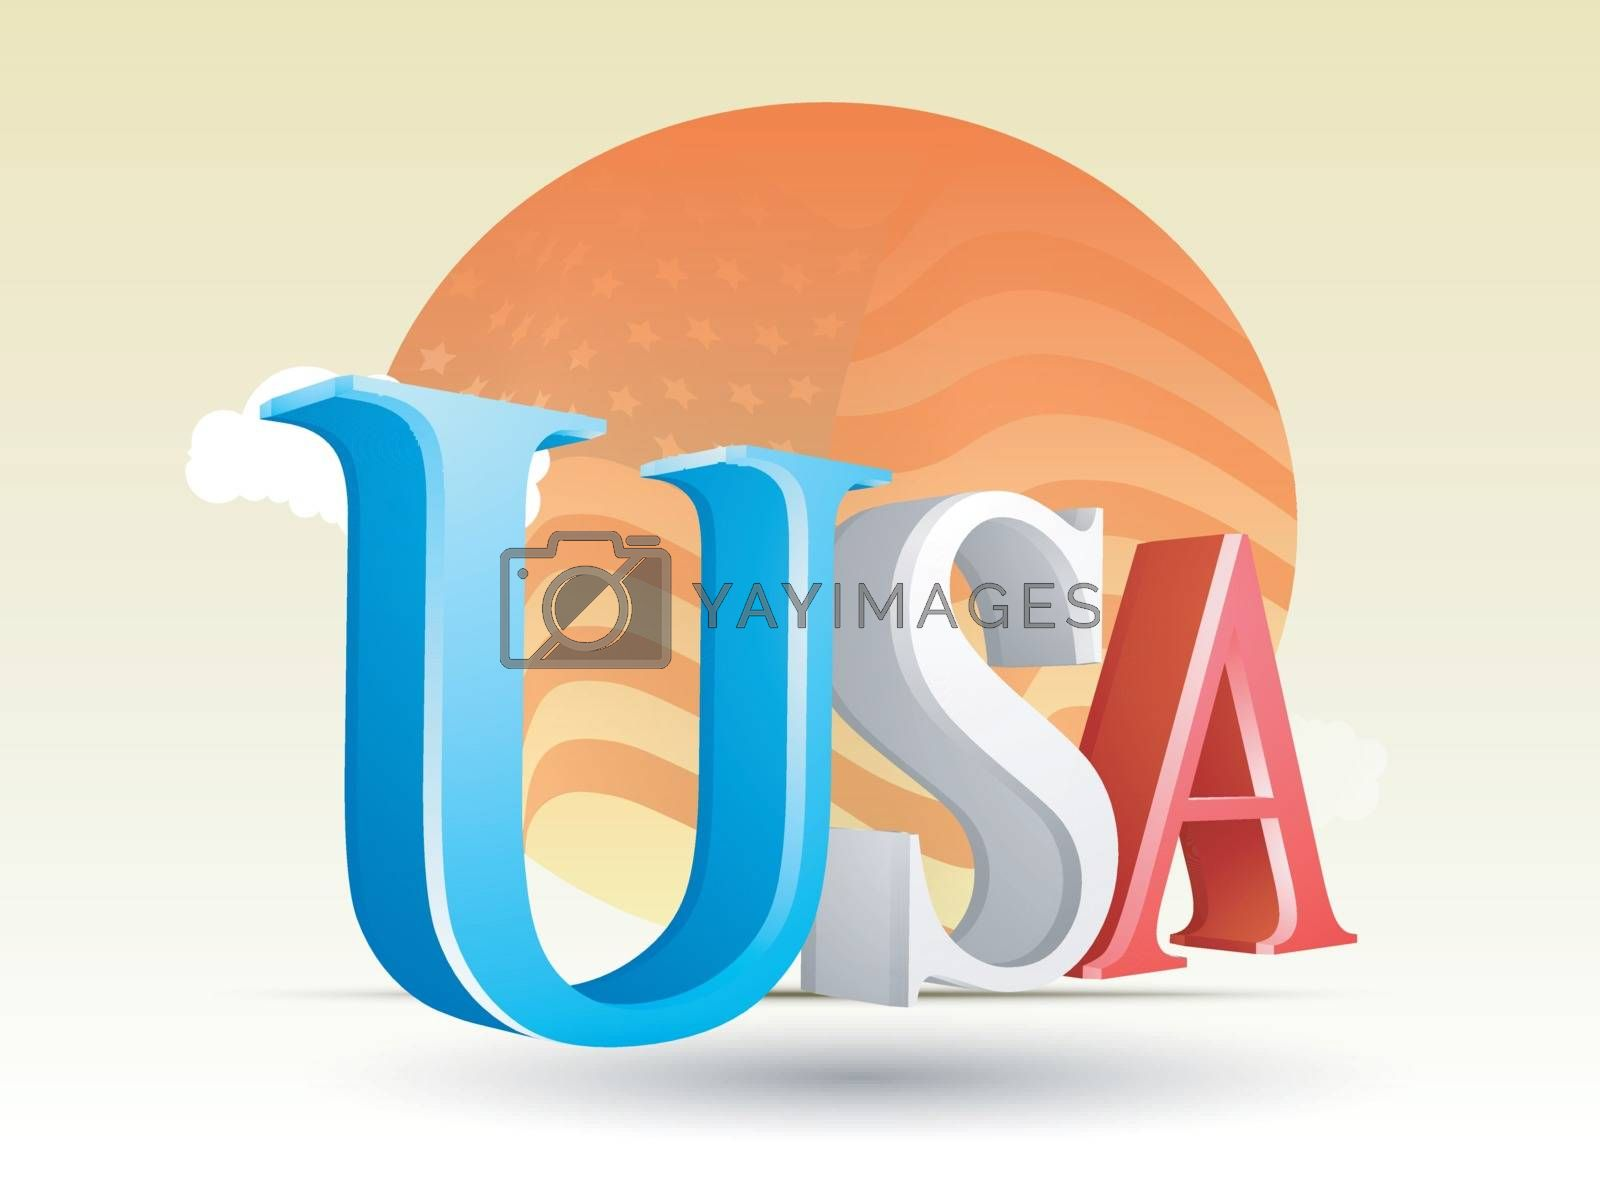 Glossy 3D Text USA in American Flag colors on waving flag background.